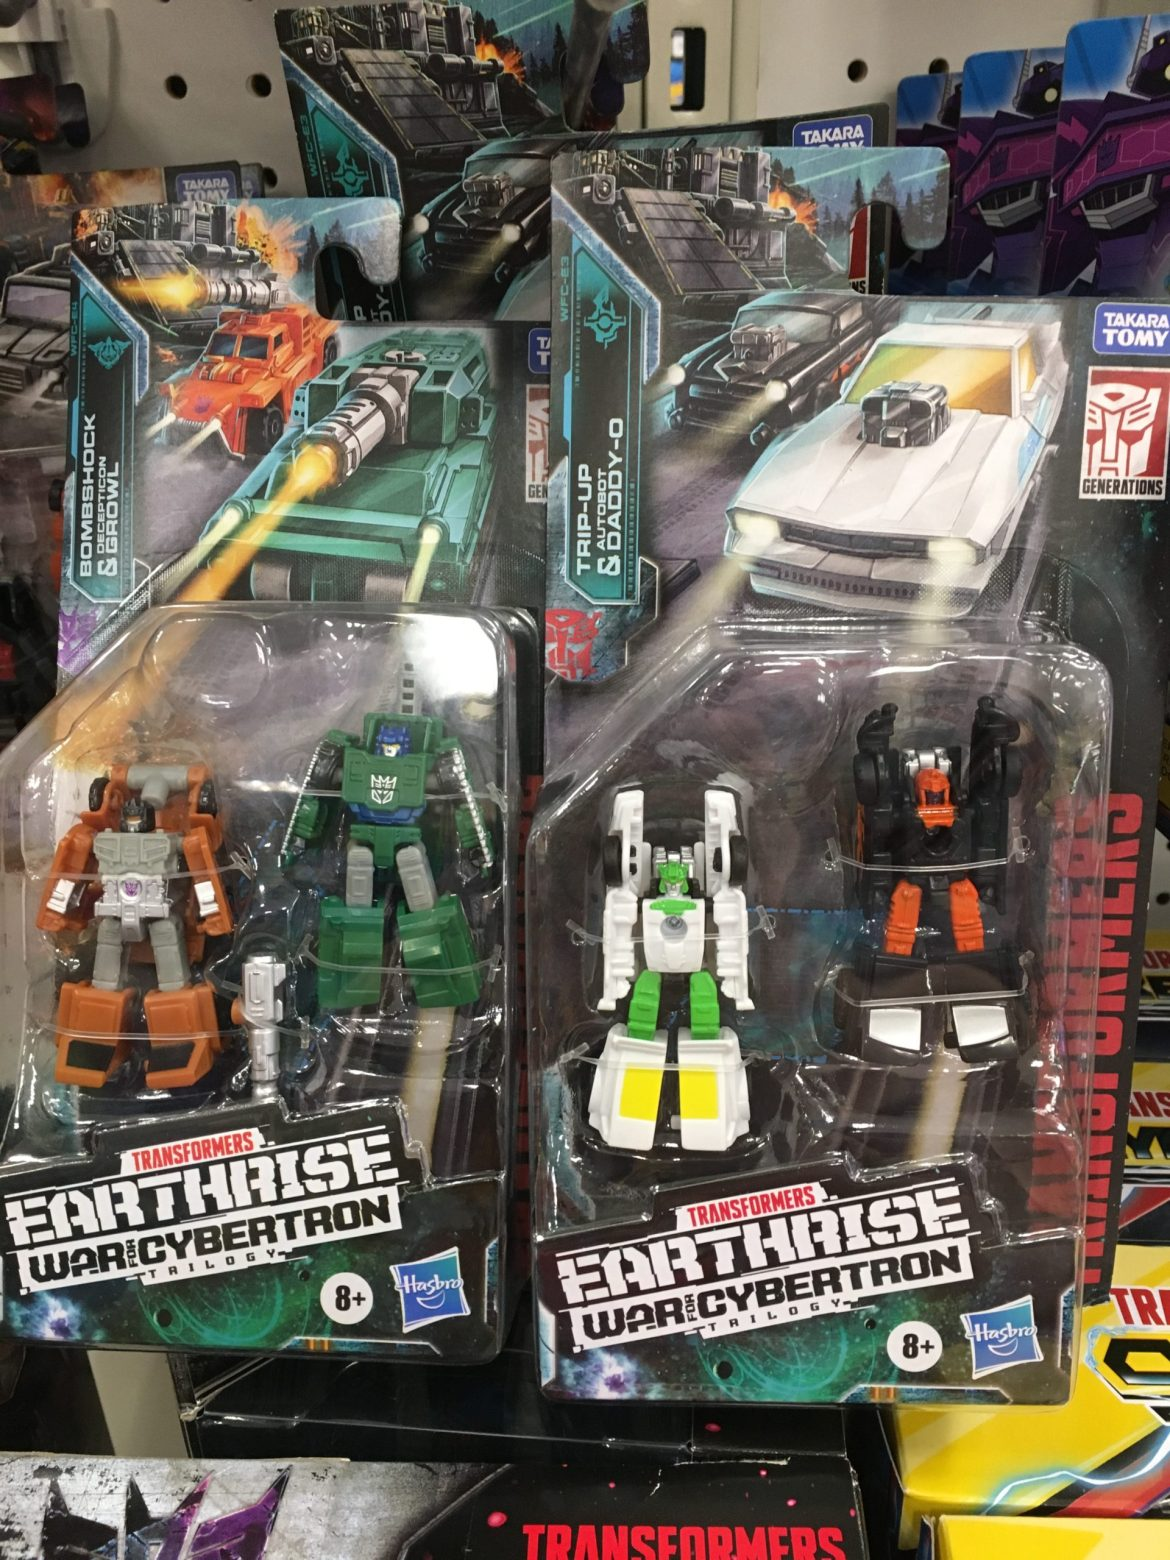 Transformers Earthrise Micromasters spotted at Retail